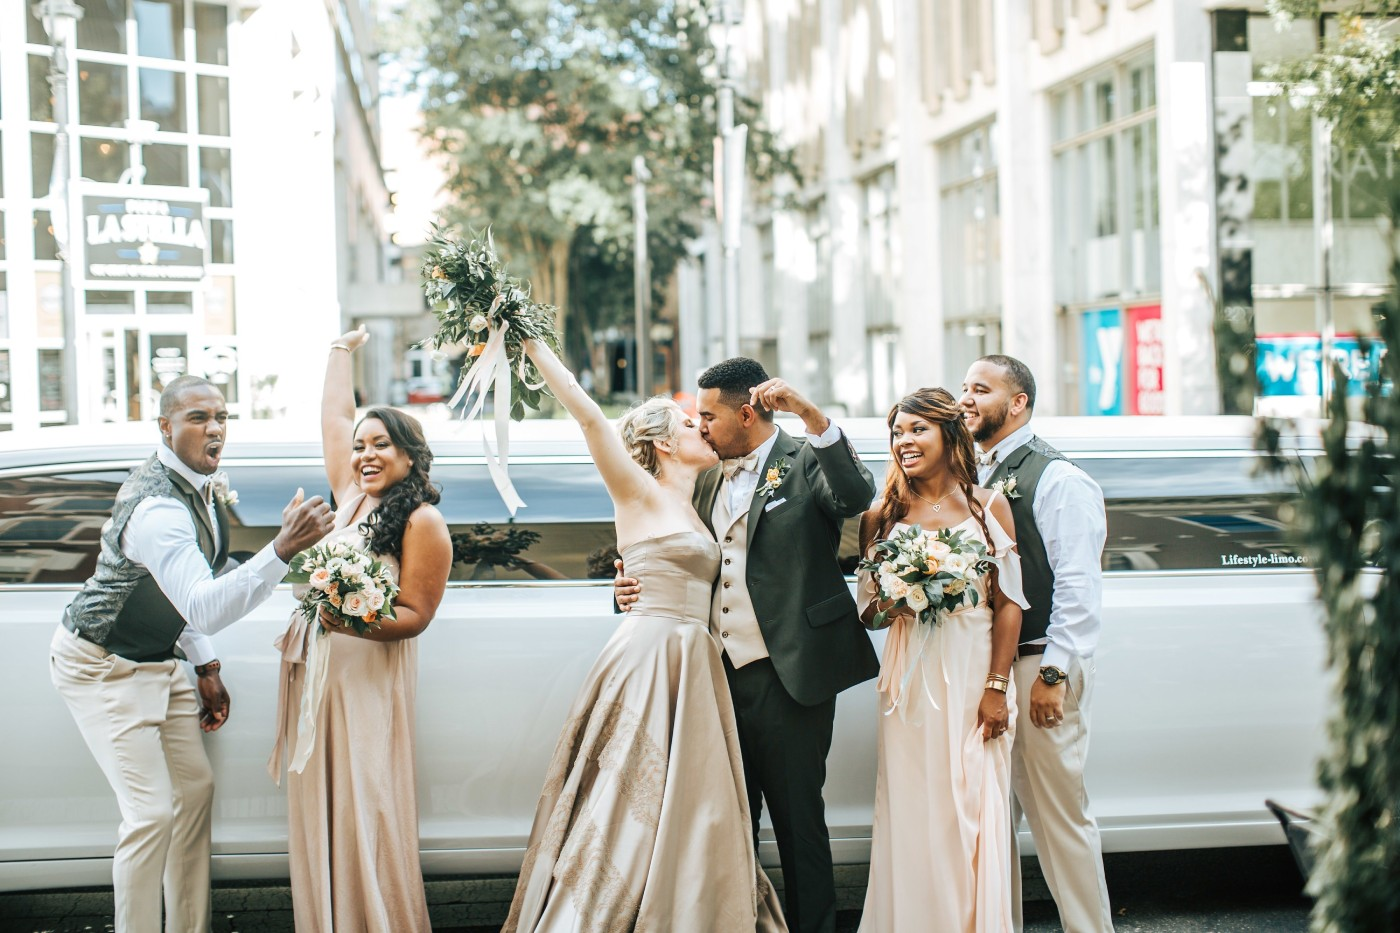 Wedding Party in Front of Limo